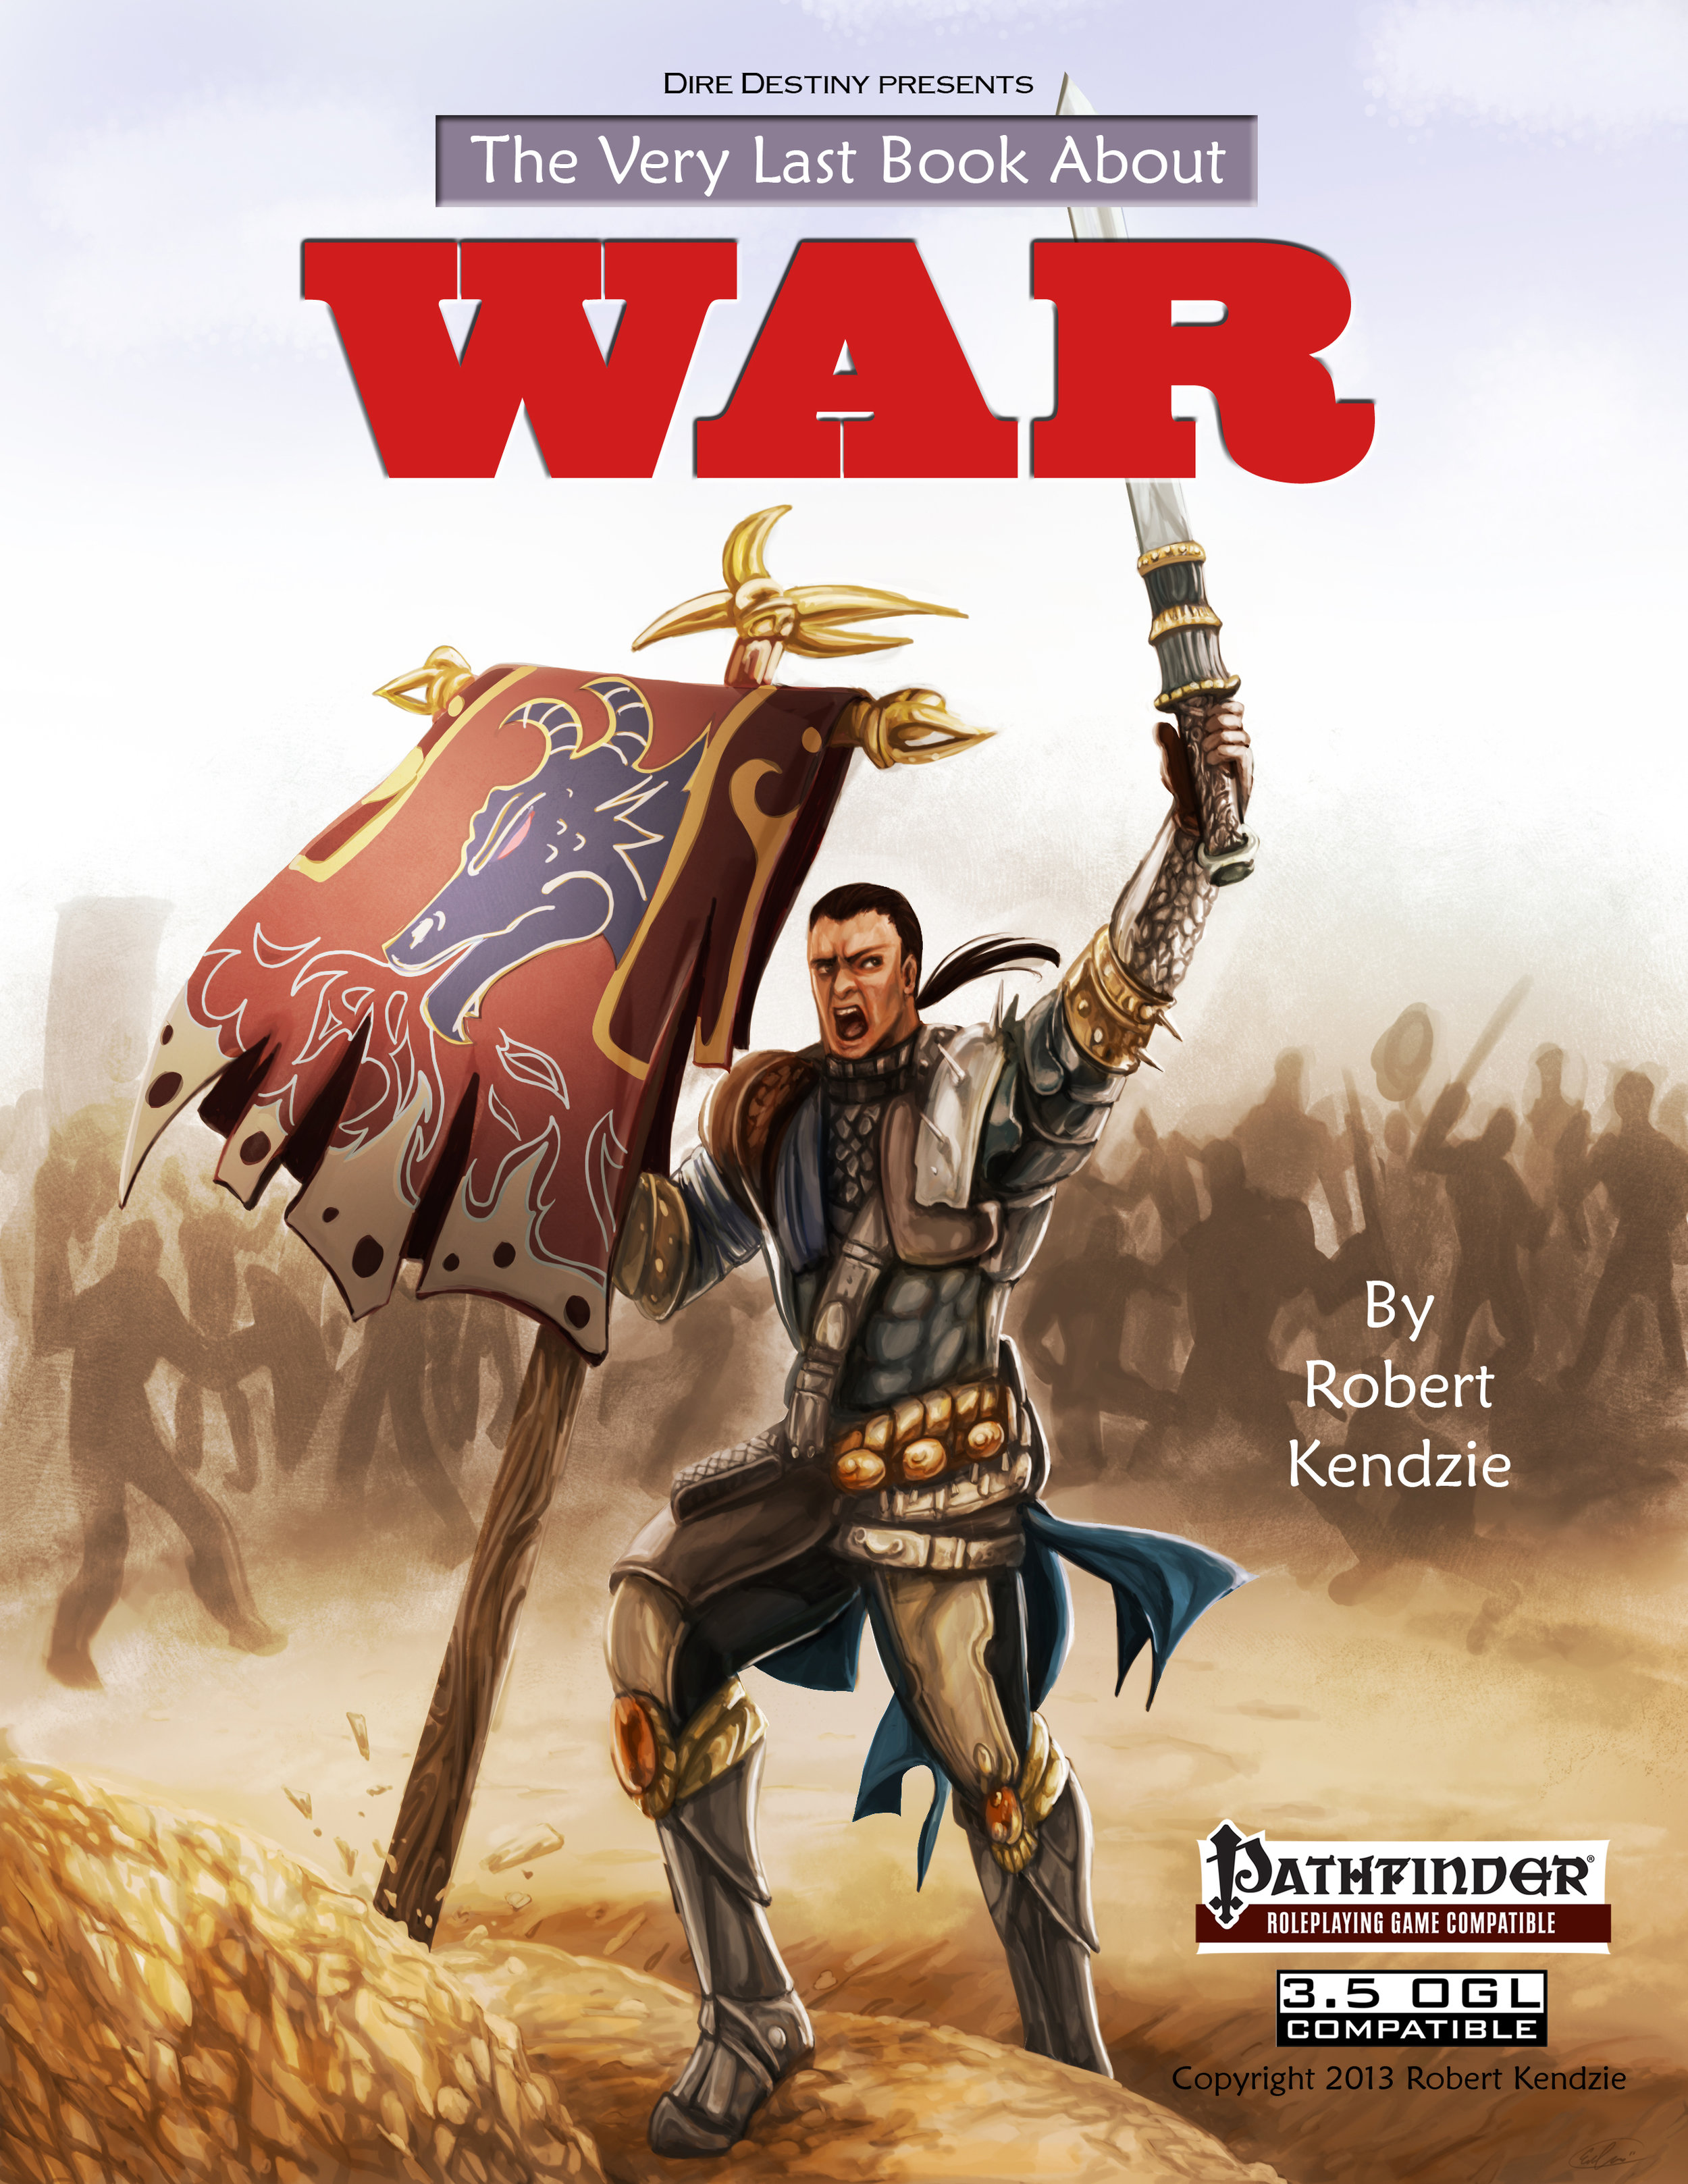 The Very Last Book About War - Throughout the history of epic fantasy, one thing never changes: War! Now you and your friends will be able to portray all the heroism and drama of a grand battle as your characters lead men and monsters in conflict on the field of battle. Dire Destiny Books presents a new system that truly weds the individual heroics and derring-do of fantasy roleplay to the epic sweep and scope of wargaming, allowing players to engage in tactical leadership and use their unique abilities to the fullest. Copyright 2014, black & white, 30 pages. Cover by Eva Dennis.